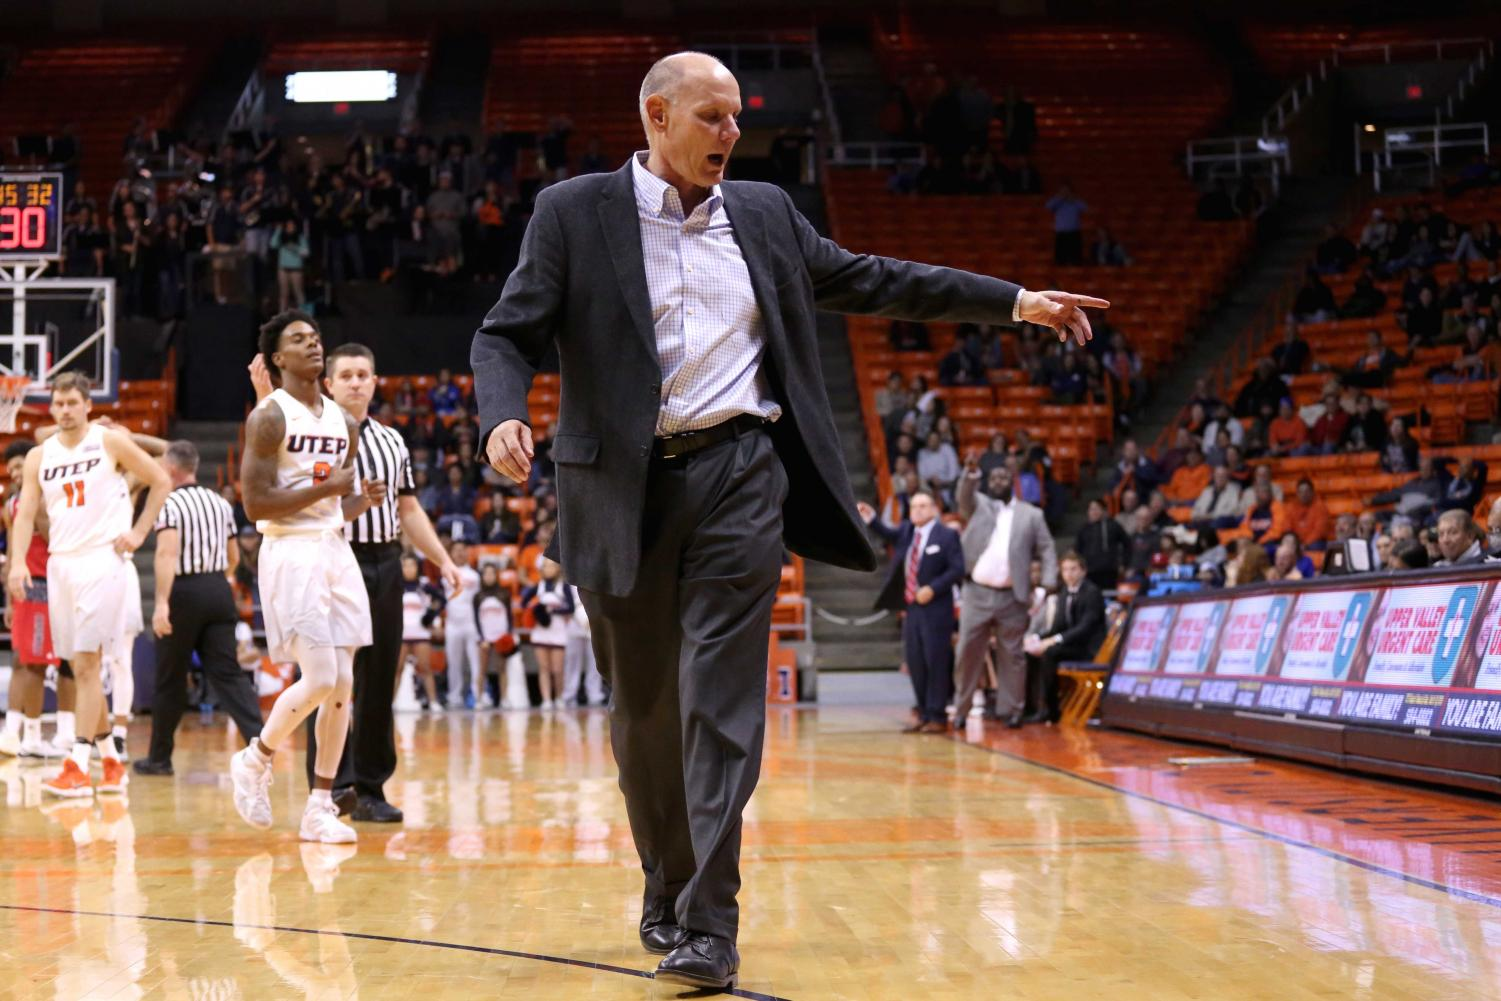 Interim head coach Phil Johnson exits the court as he is thrown out of the game.